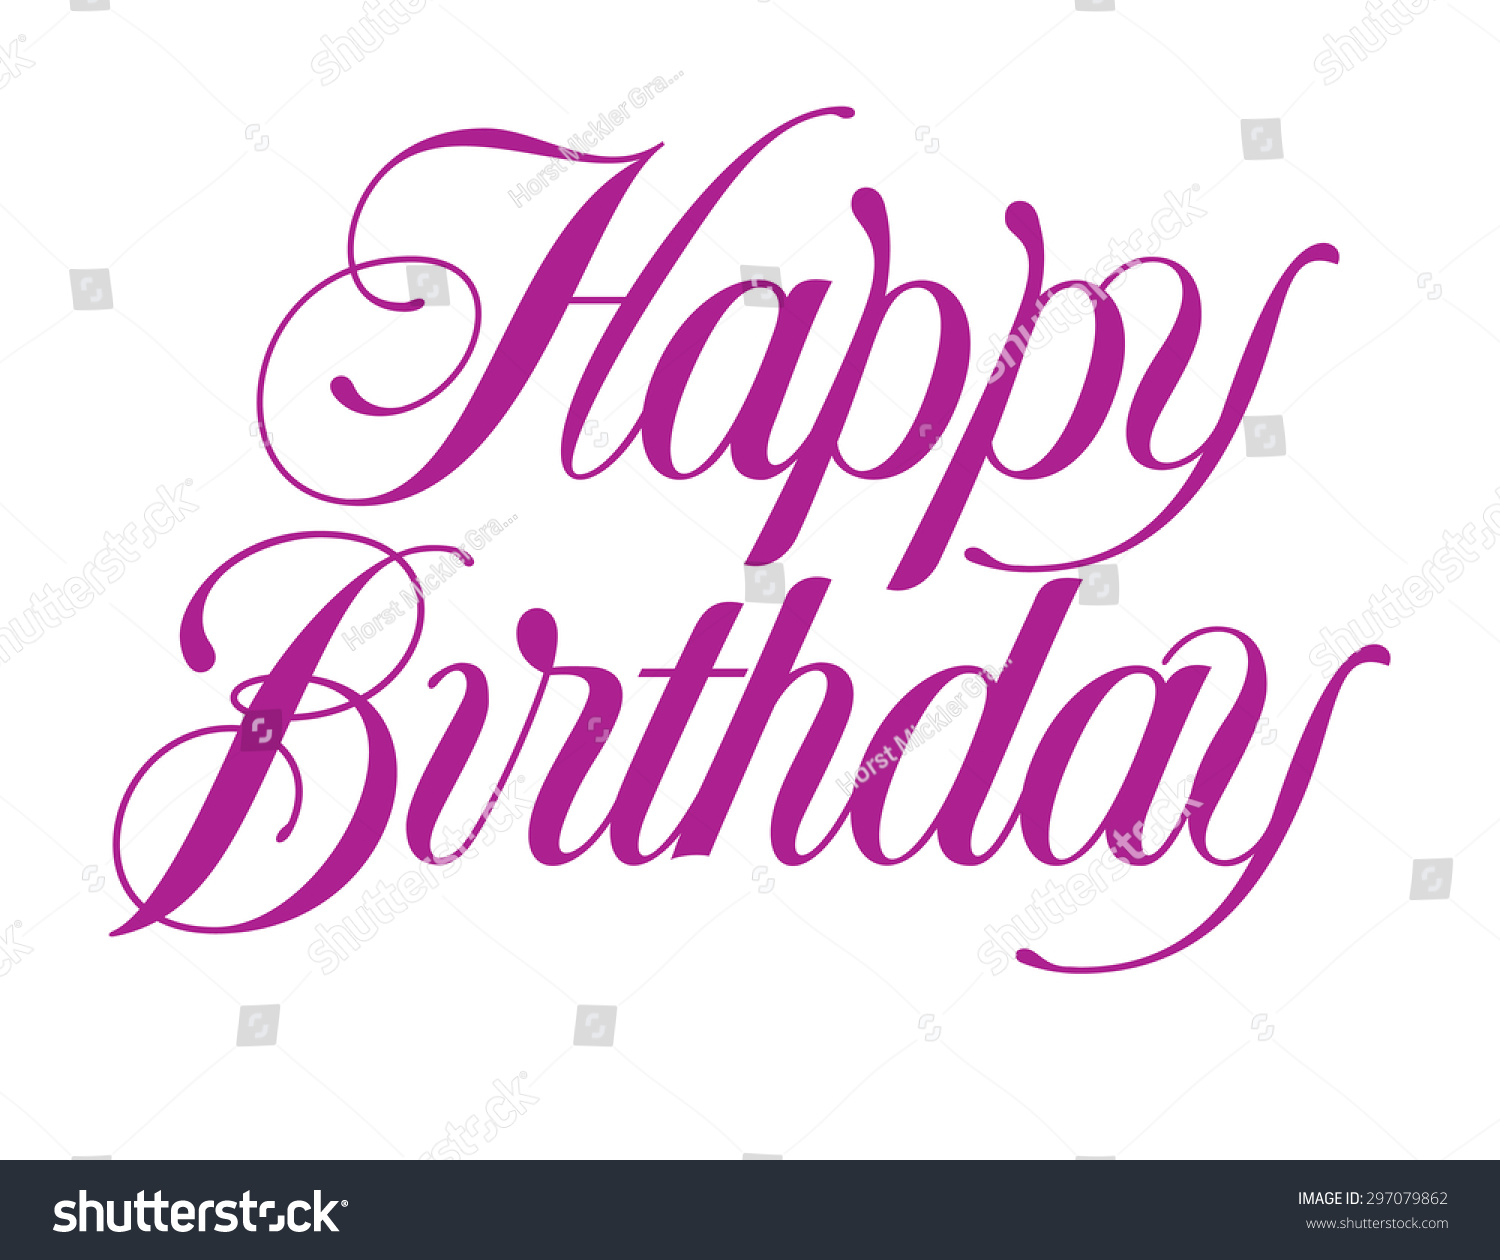 Download image happy birthday handwriting pc android iphone and ipad